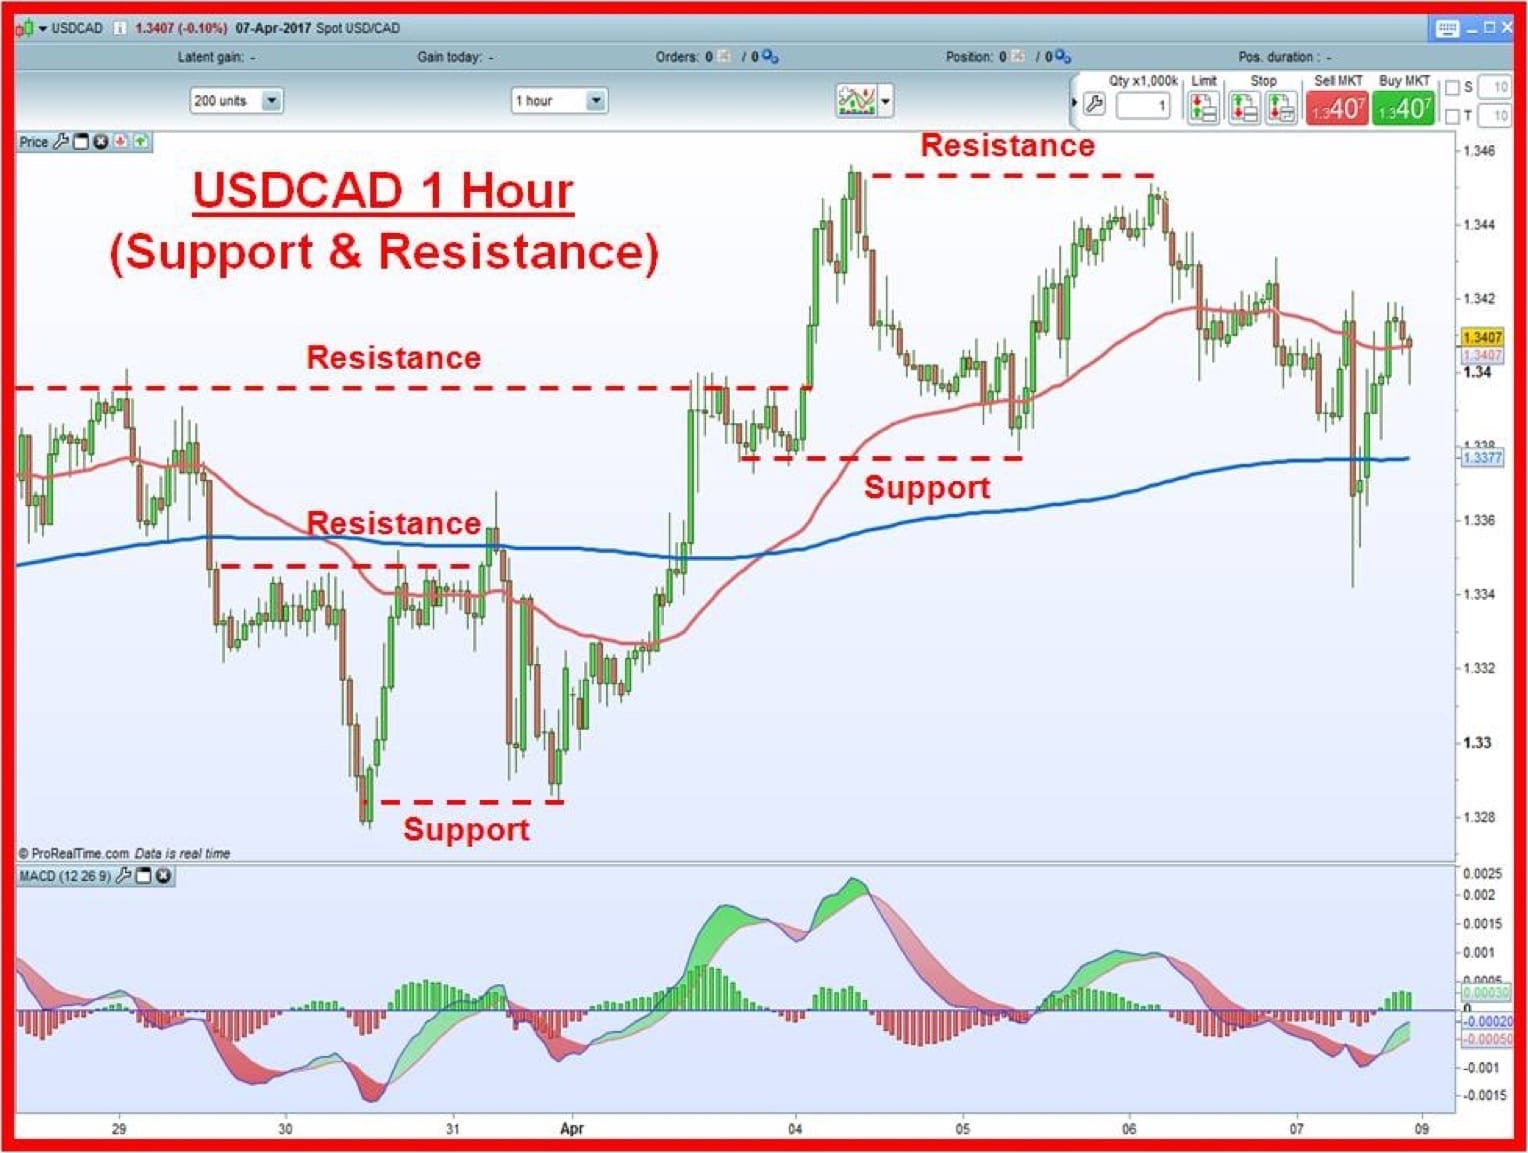 USDCAD 1 hour chart with support and resistance levels denoted by dotted lines.